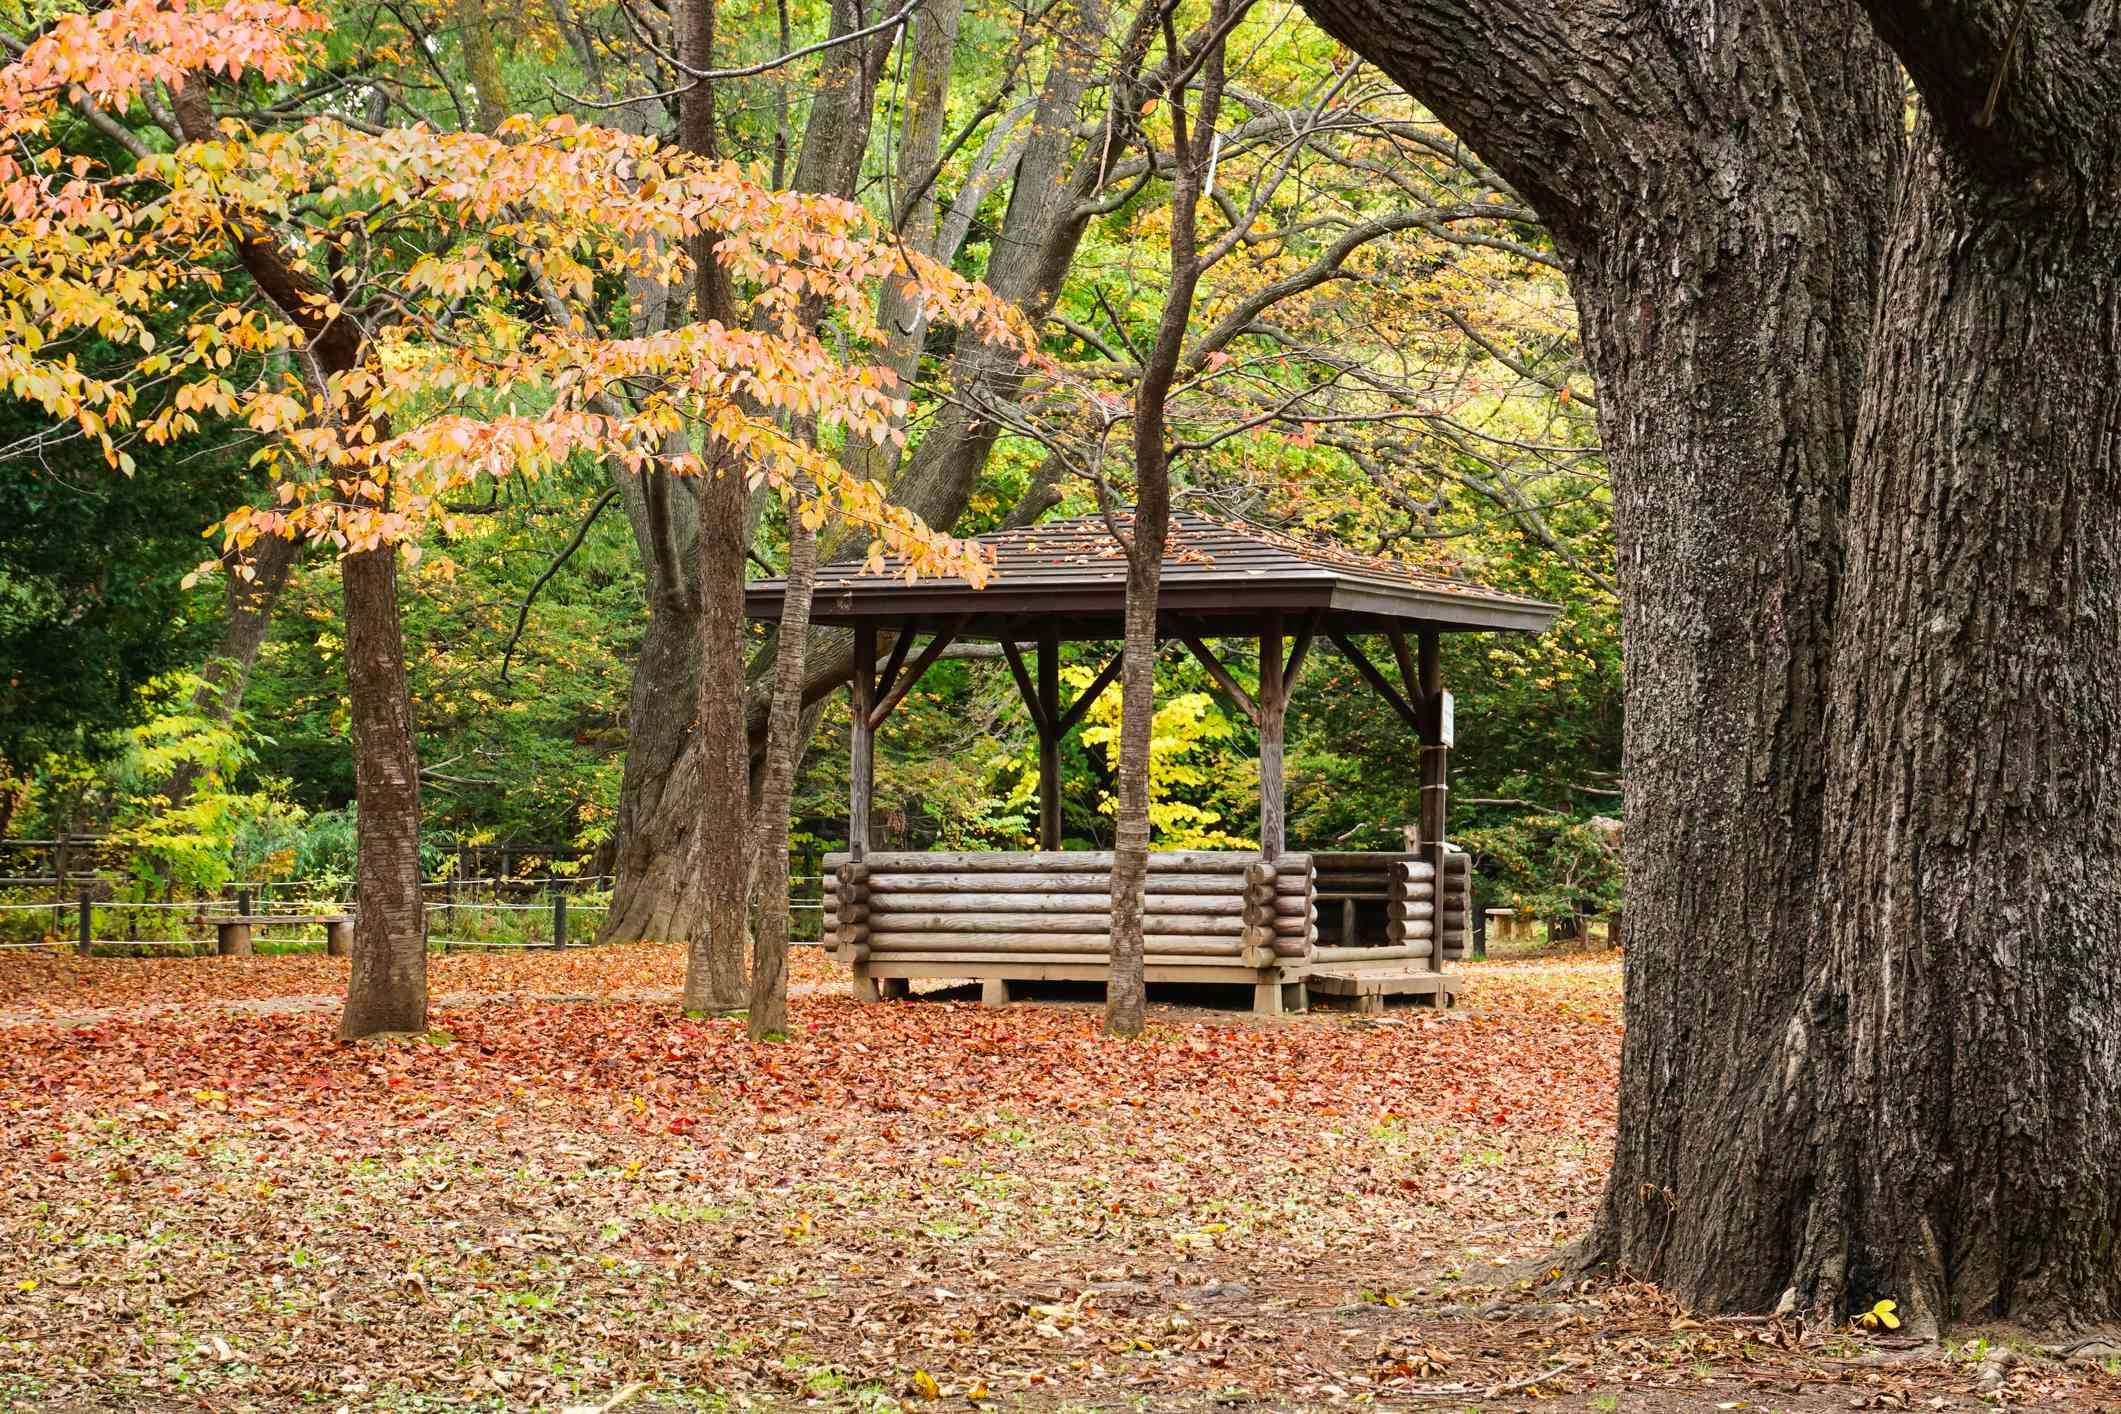 Small wooden japanese pagoda in a large park with leaves on the ground